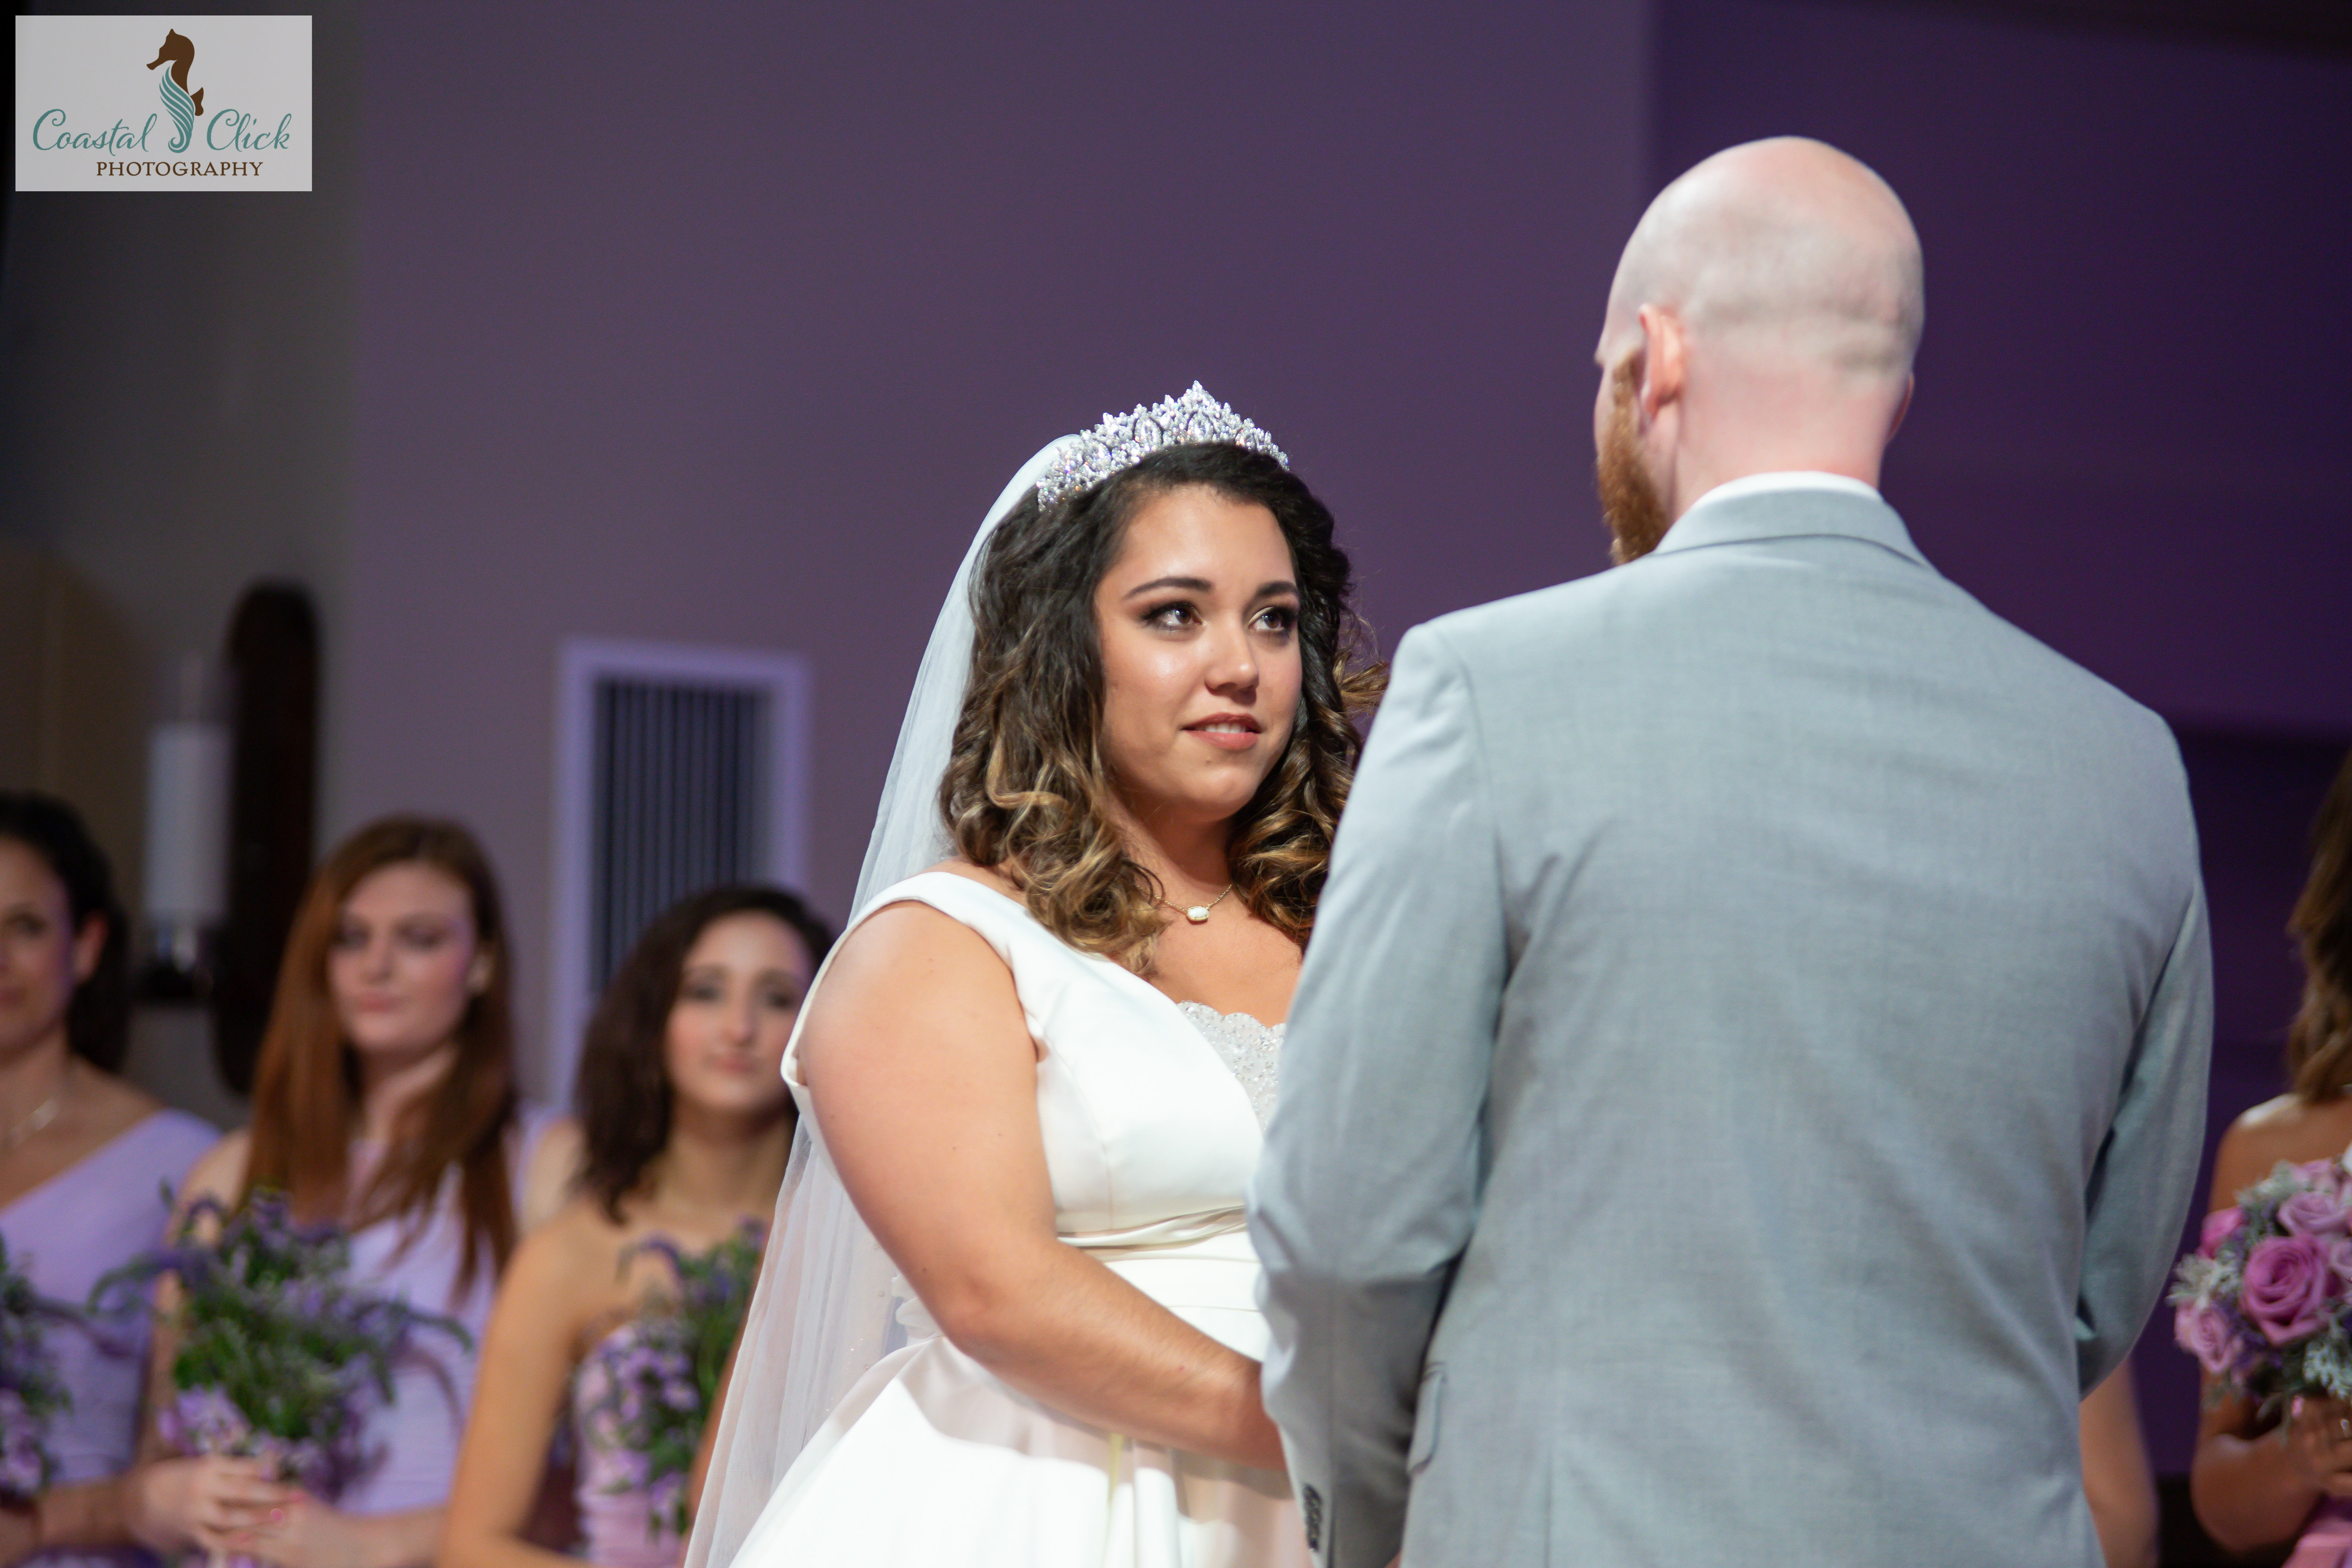 chalmers-wedding-lake-worth-casino-ballroom-coastal-click-photography-8811